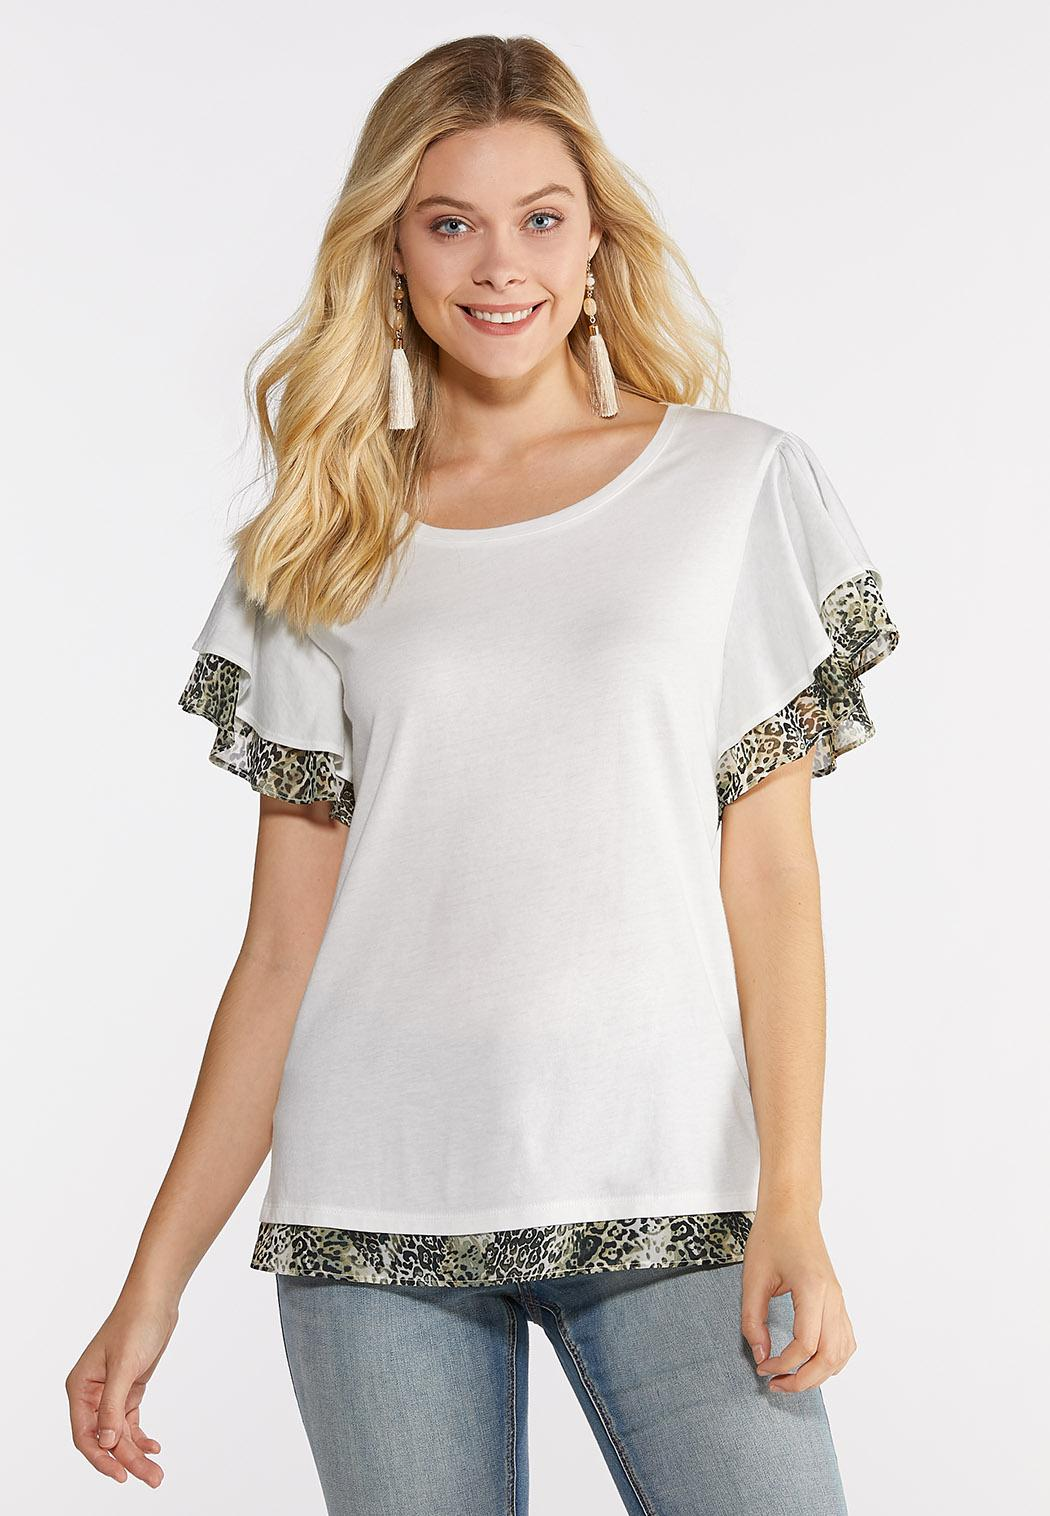 2680298ad02 Flutter Sleeve Layered Tee alternate view Flutter Sleeve Layered Tee